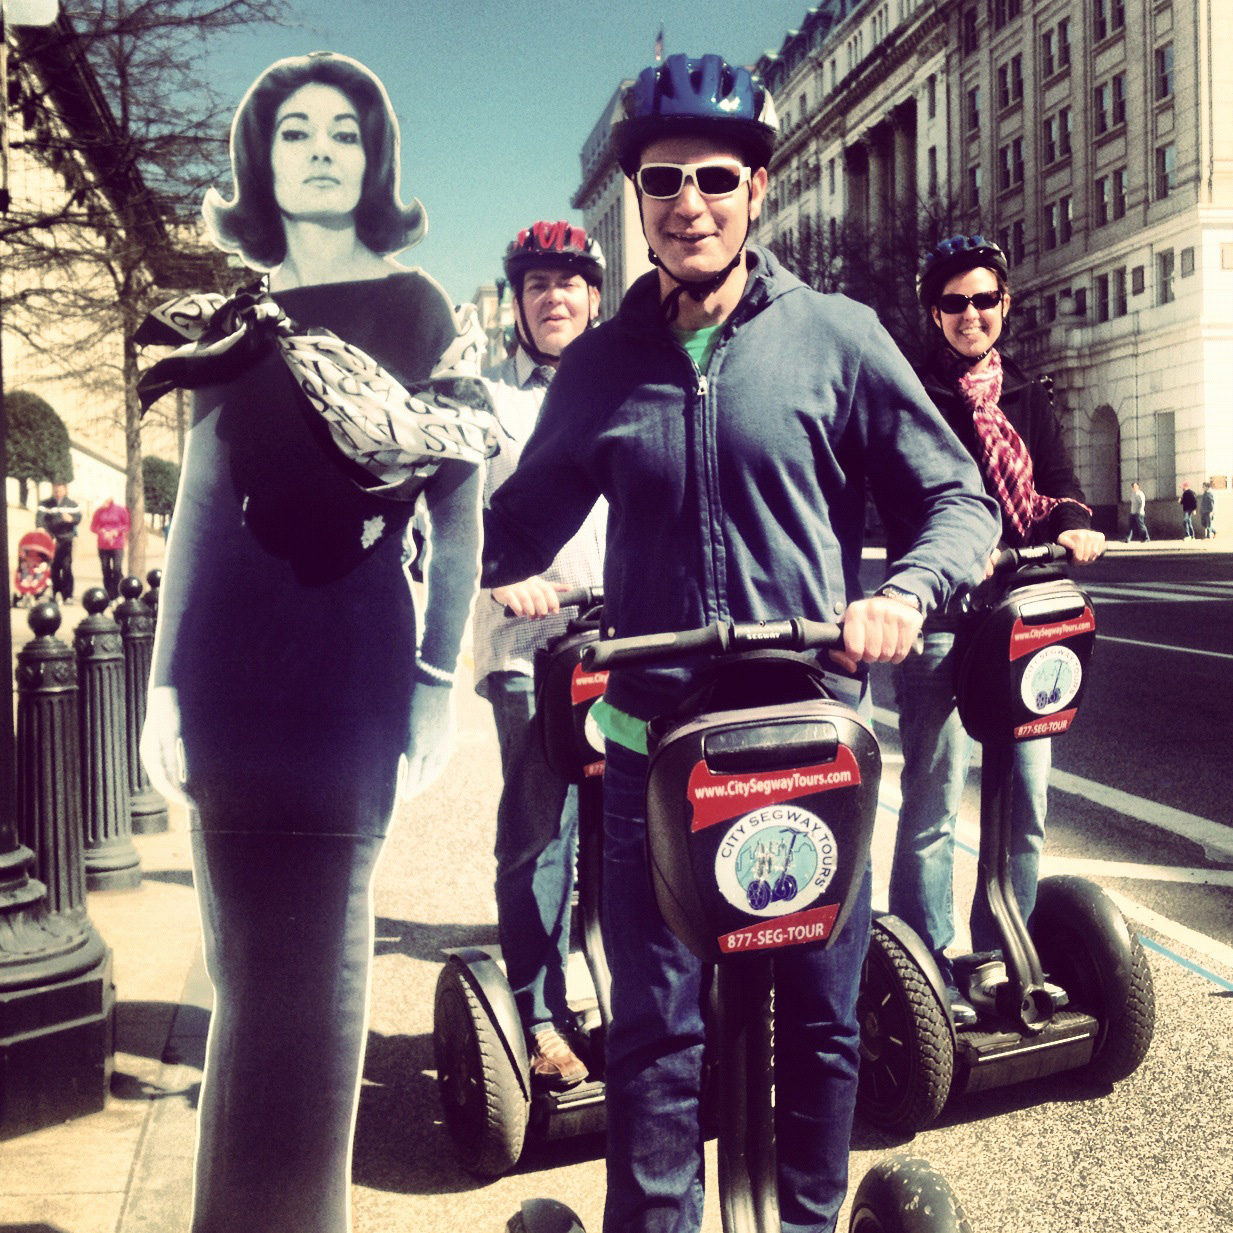 Having found her leading man gliding through the streets of Washington, Callas considers a role in a new opera performed entirely on Segways.